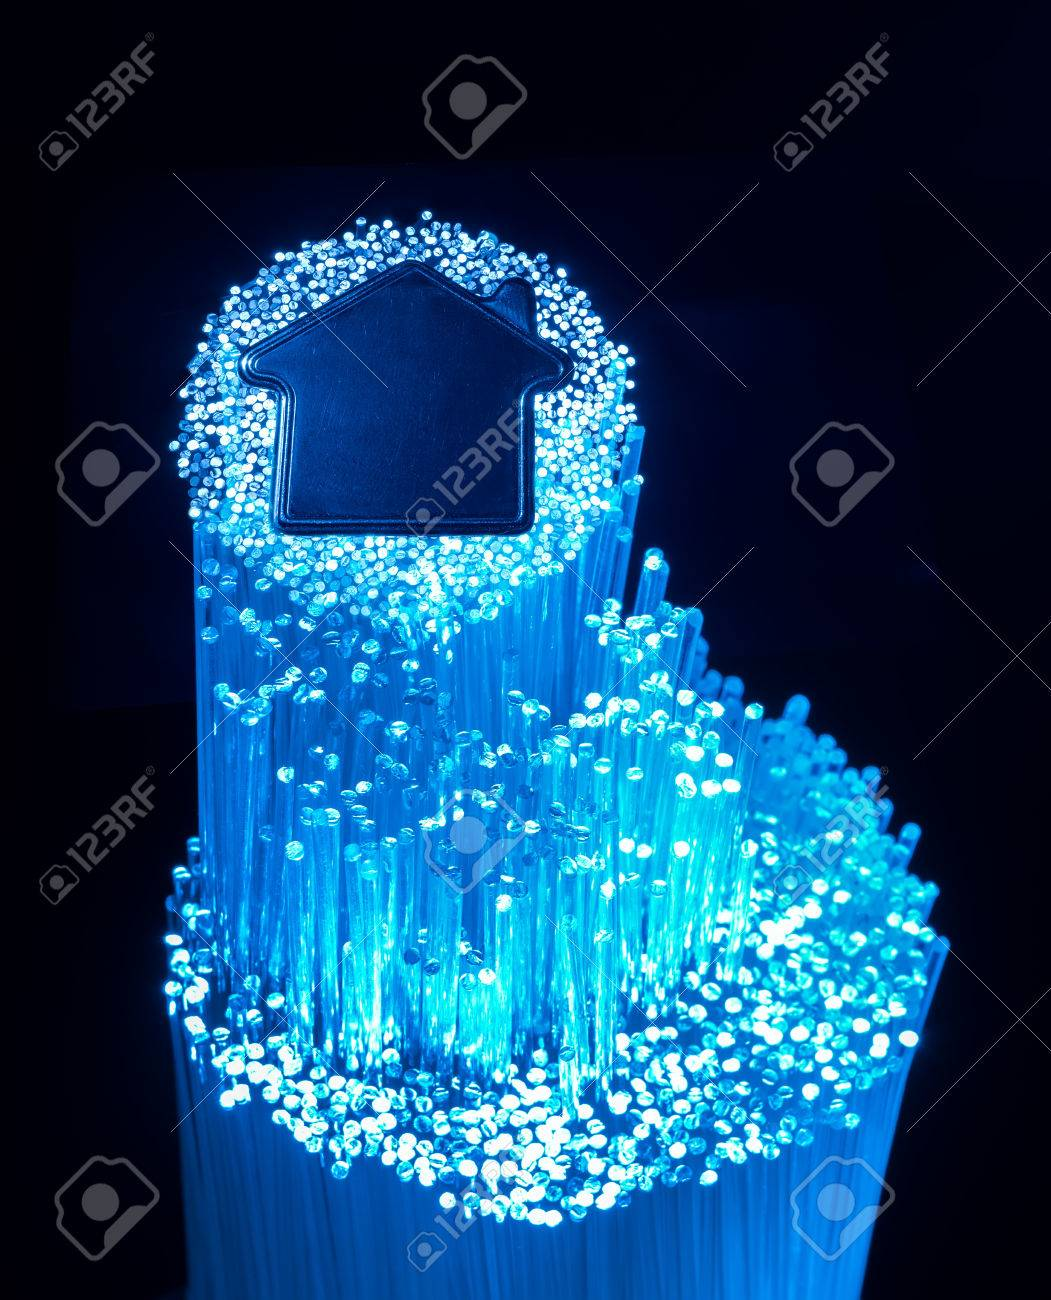 60957900 fiber optic connection to house fiber optic connection to house stock photo, picture and royalty